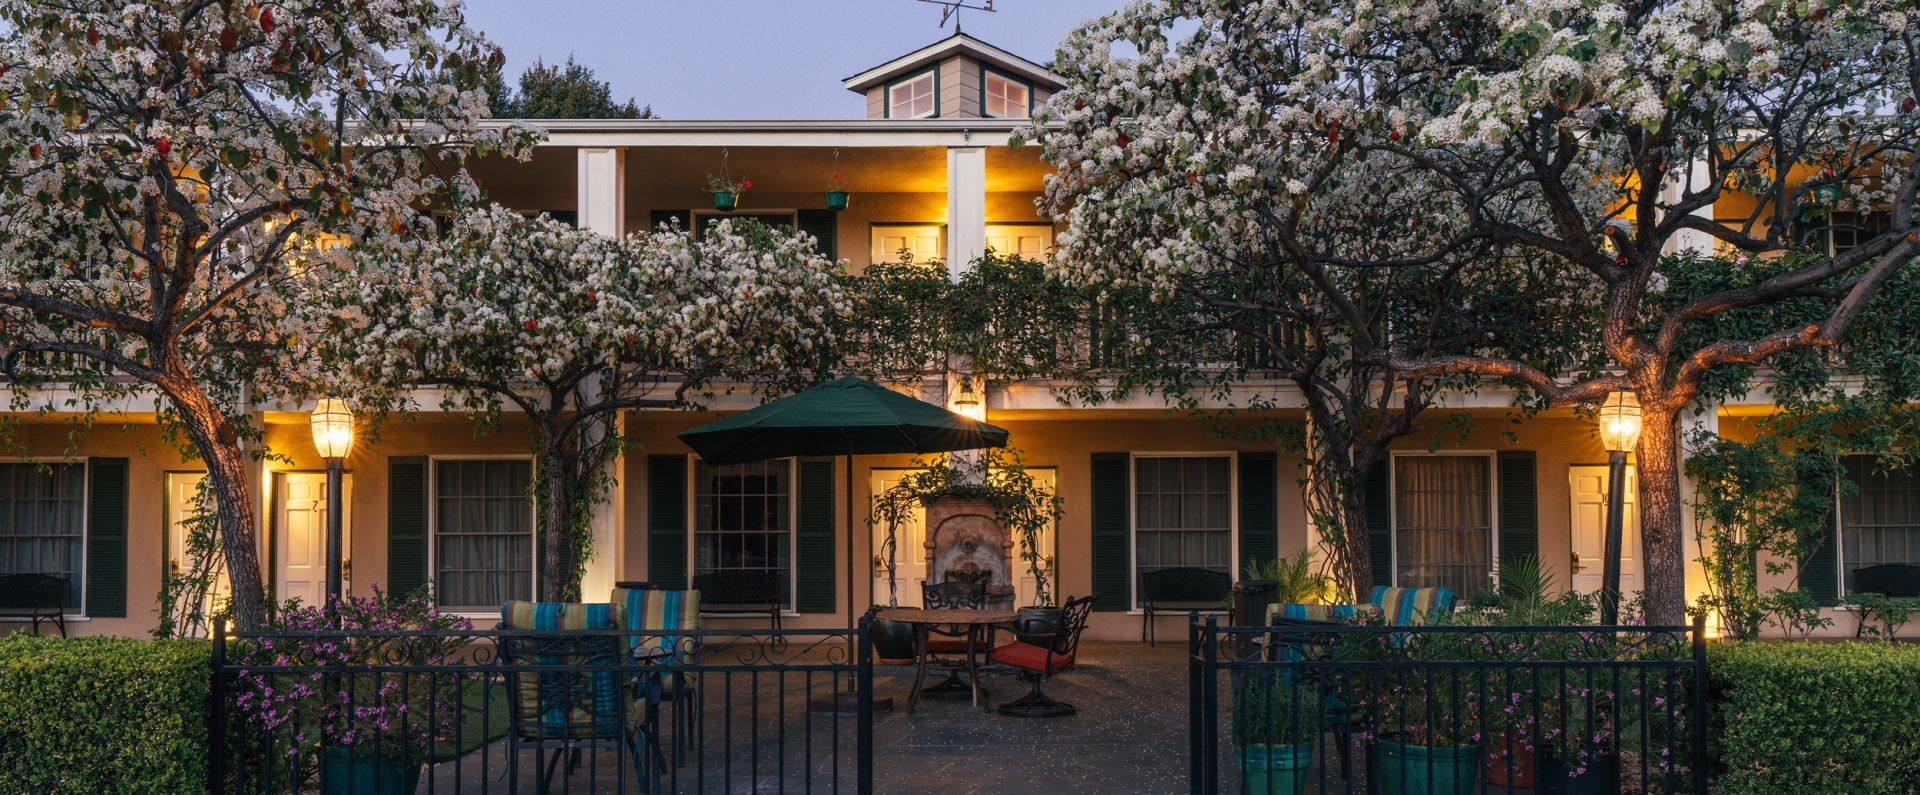 Santa Barbara Hotels | Santa Barbara Hotel Group